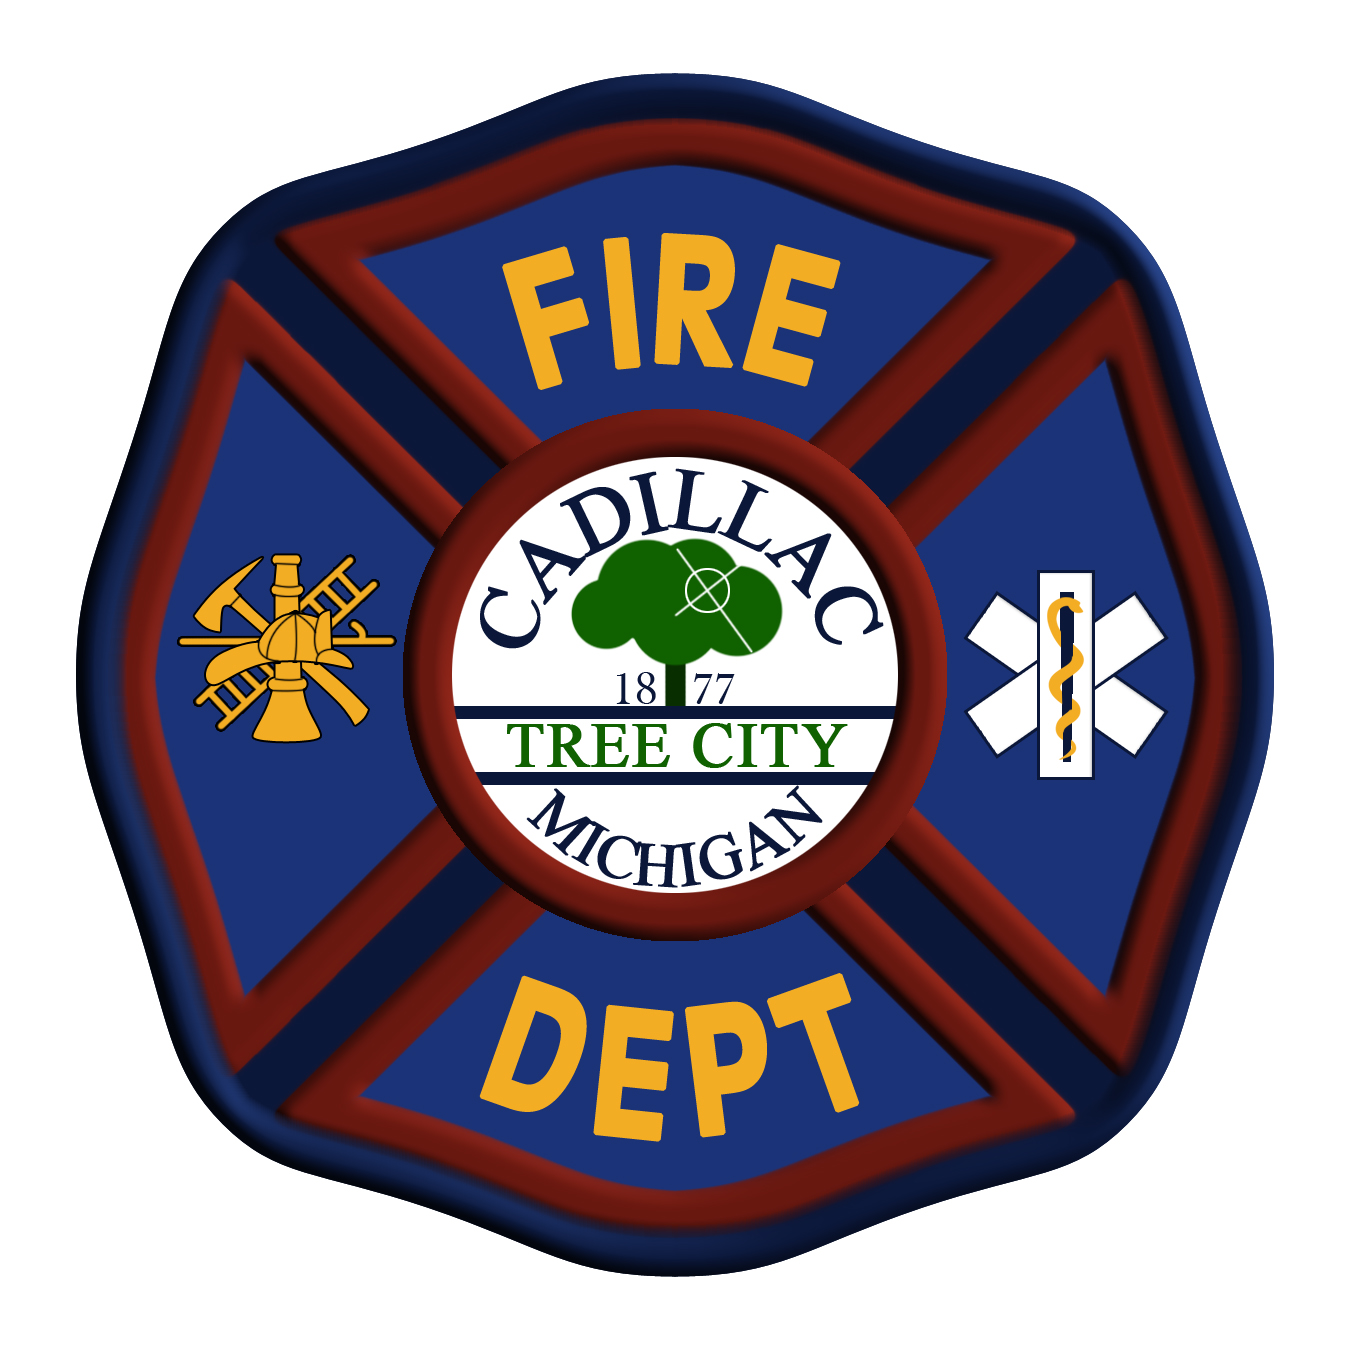 Cadillac Fire Department Patch